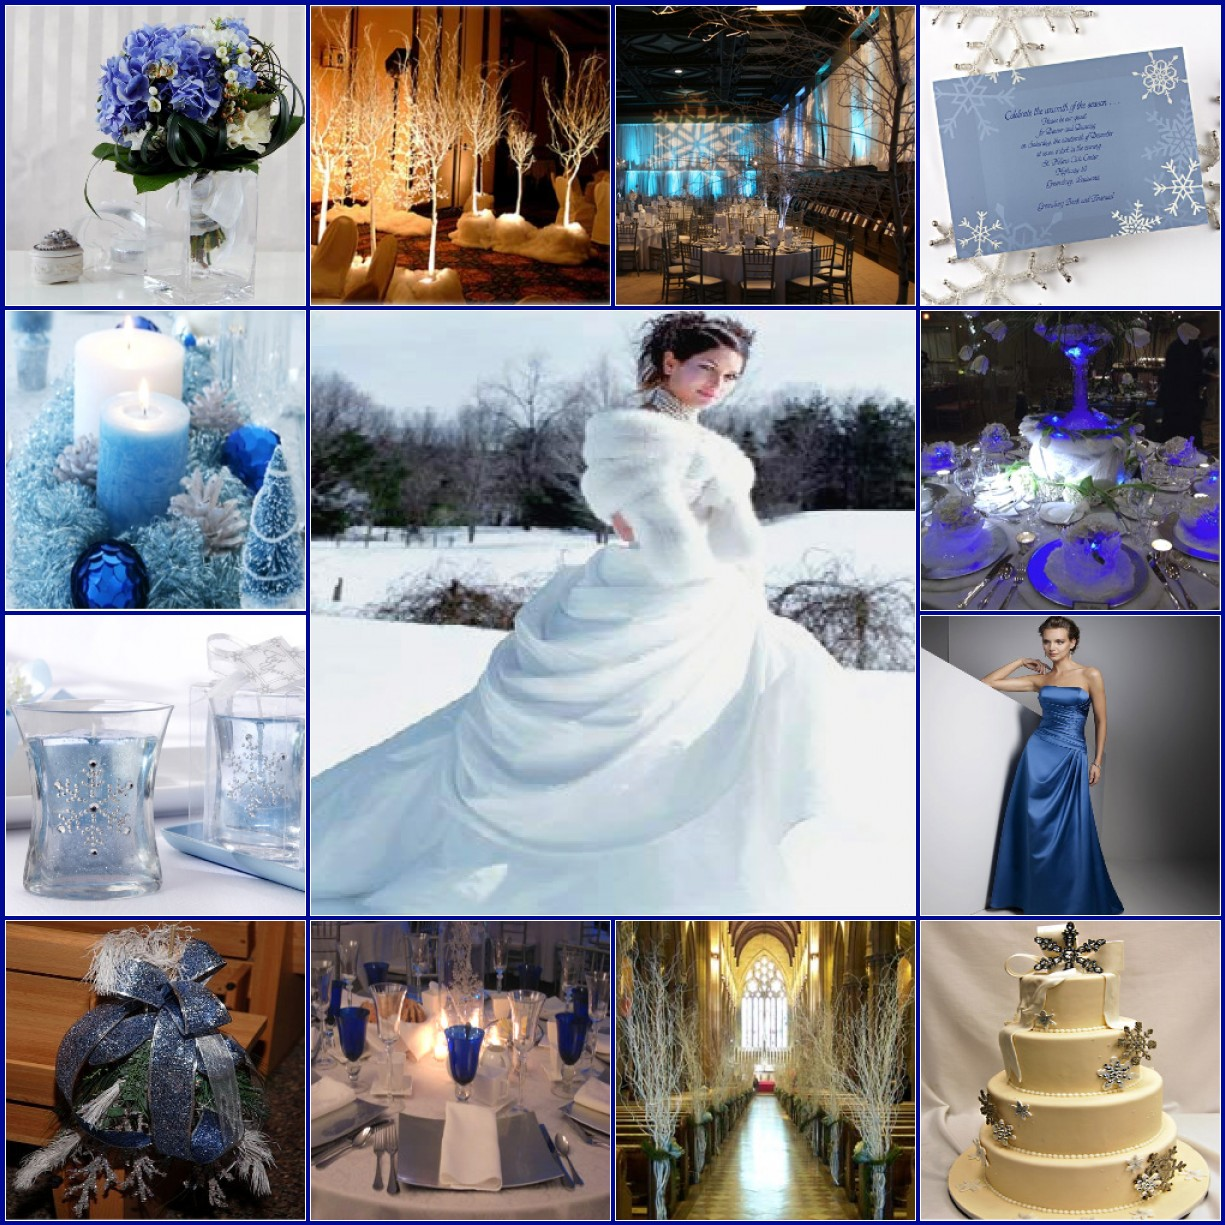 Wedding Themes And Colors: South Charlotte Banquet Center » Christmas Or New Year's